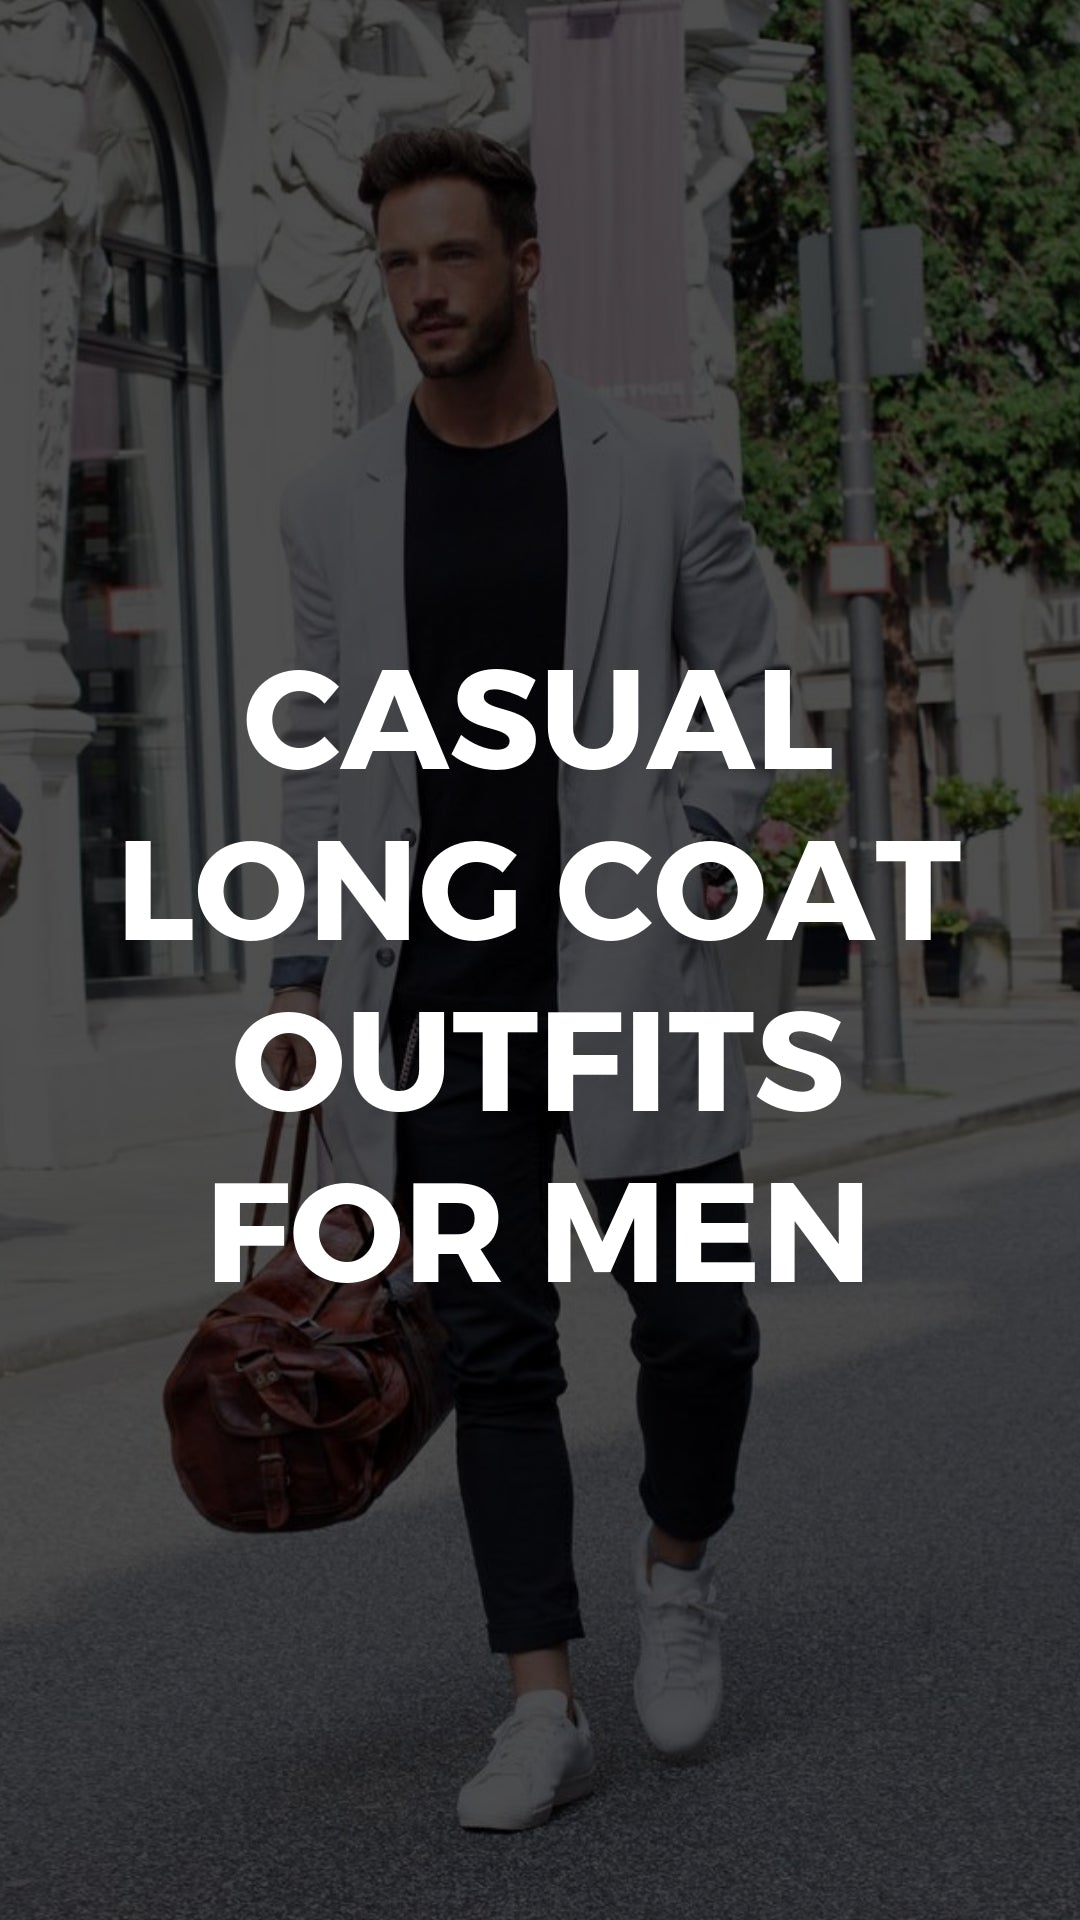 10 Ways To Wear Your Favourite Tee With An Overcoat #tshirt #longcoat #outfits #mensfashion #casual #streetstyle